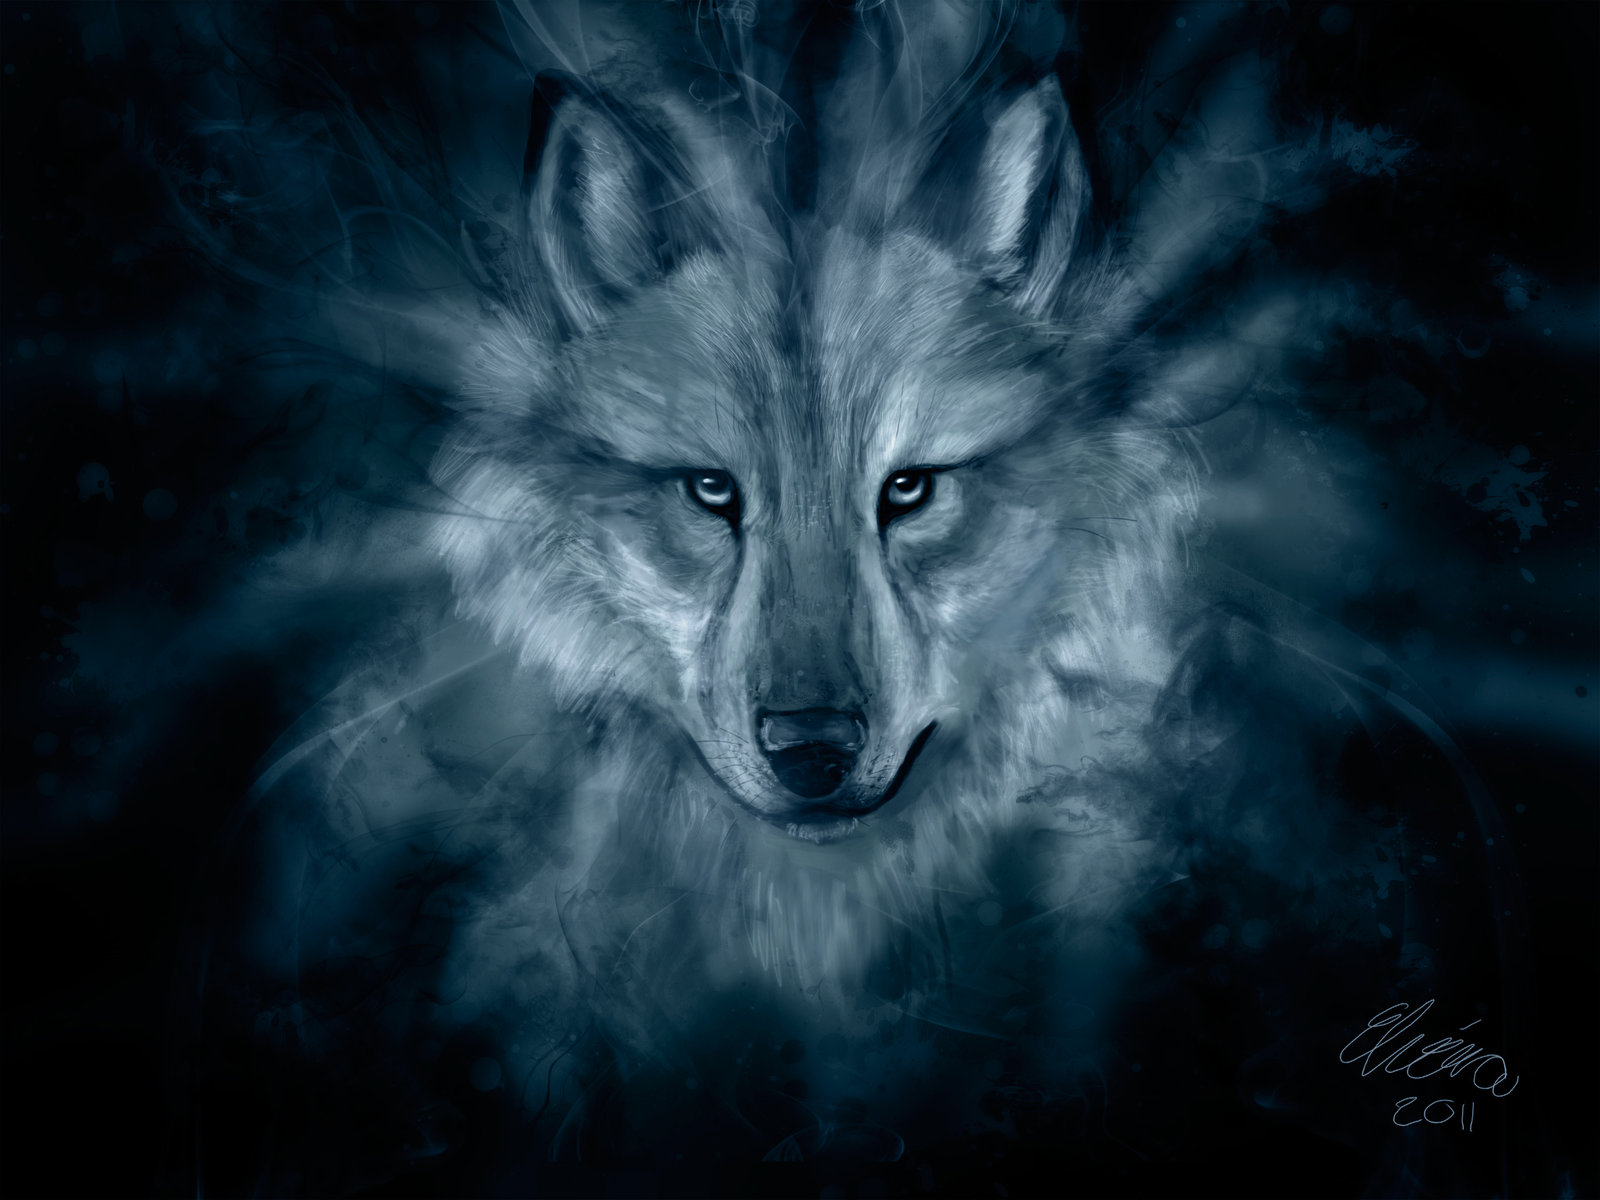 Hd Wolf Backgrounds: Cool Pictures Of Wolves Wallpapers